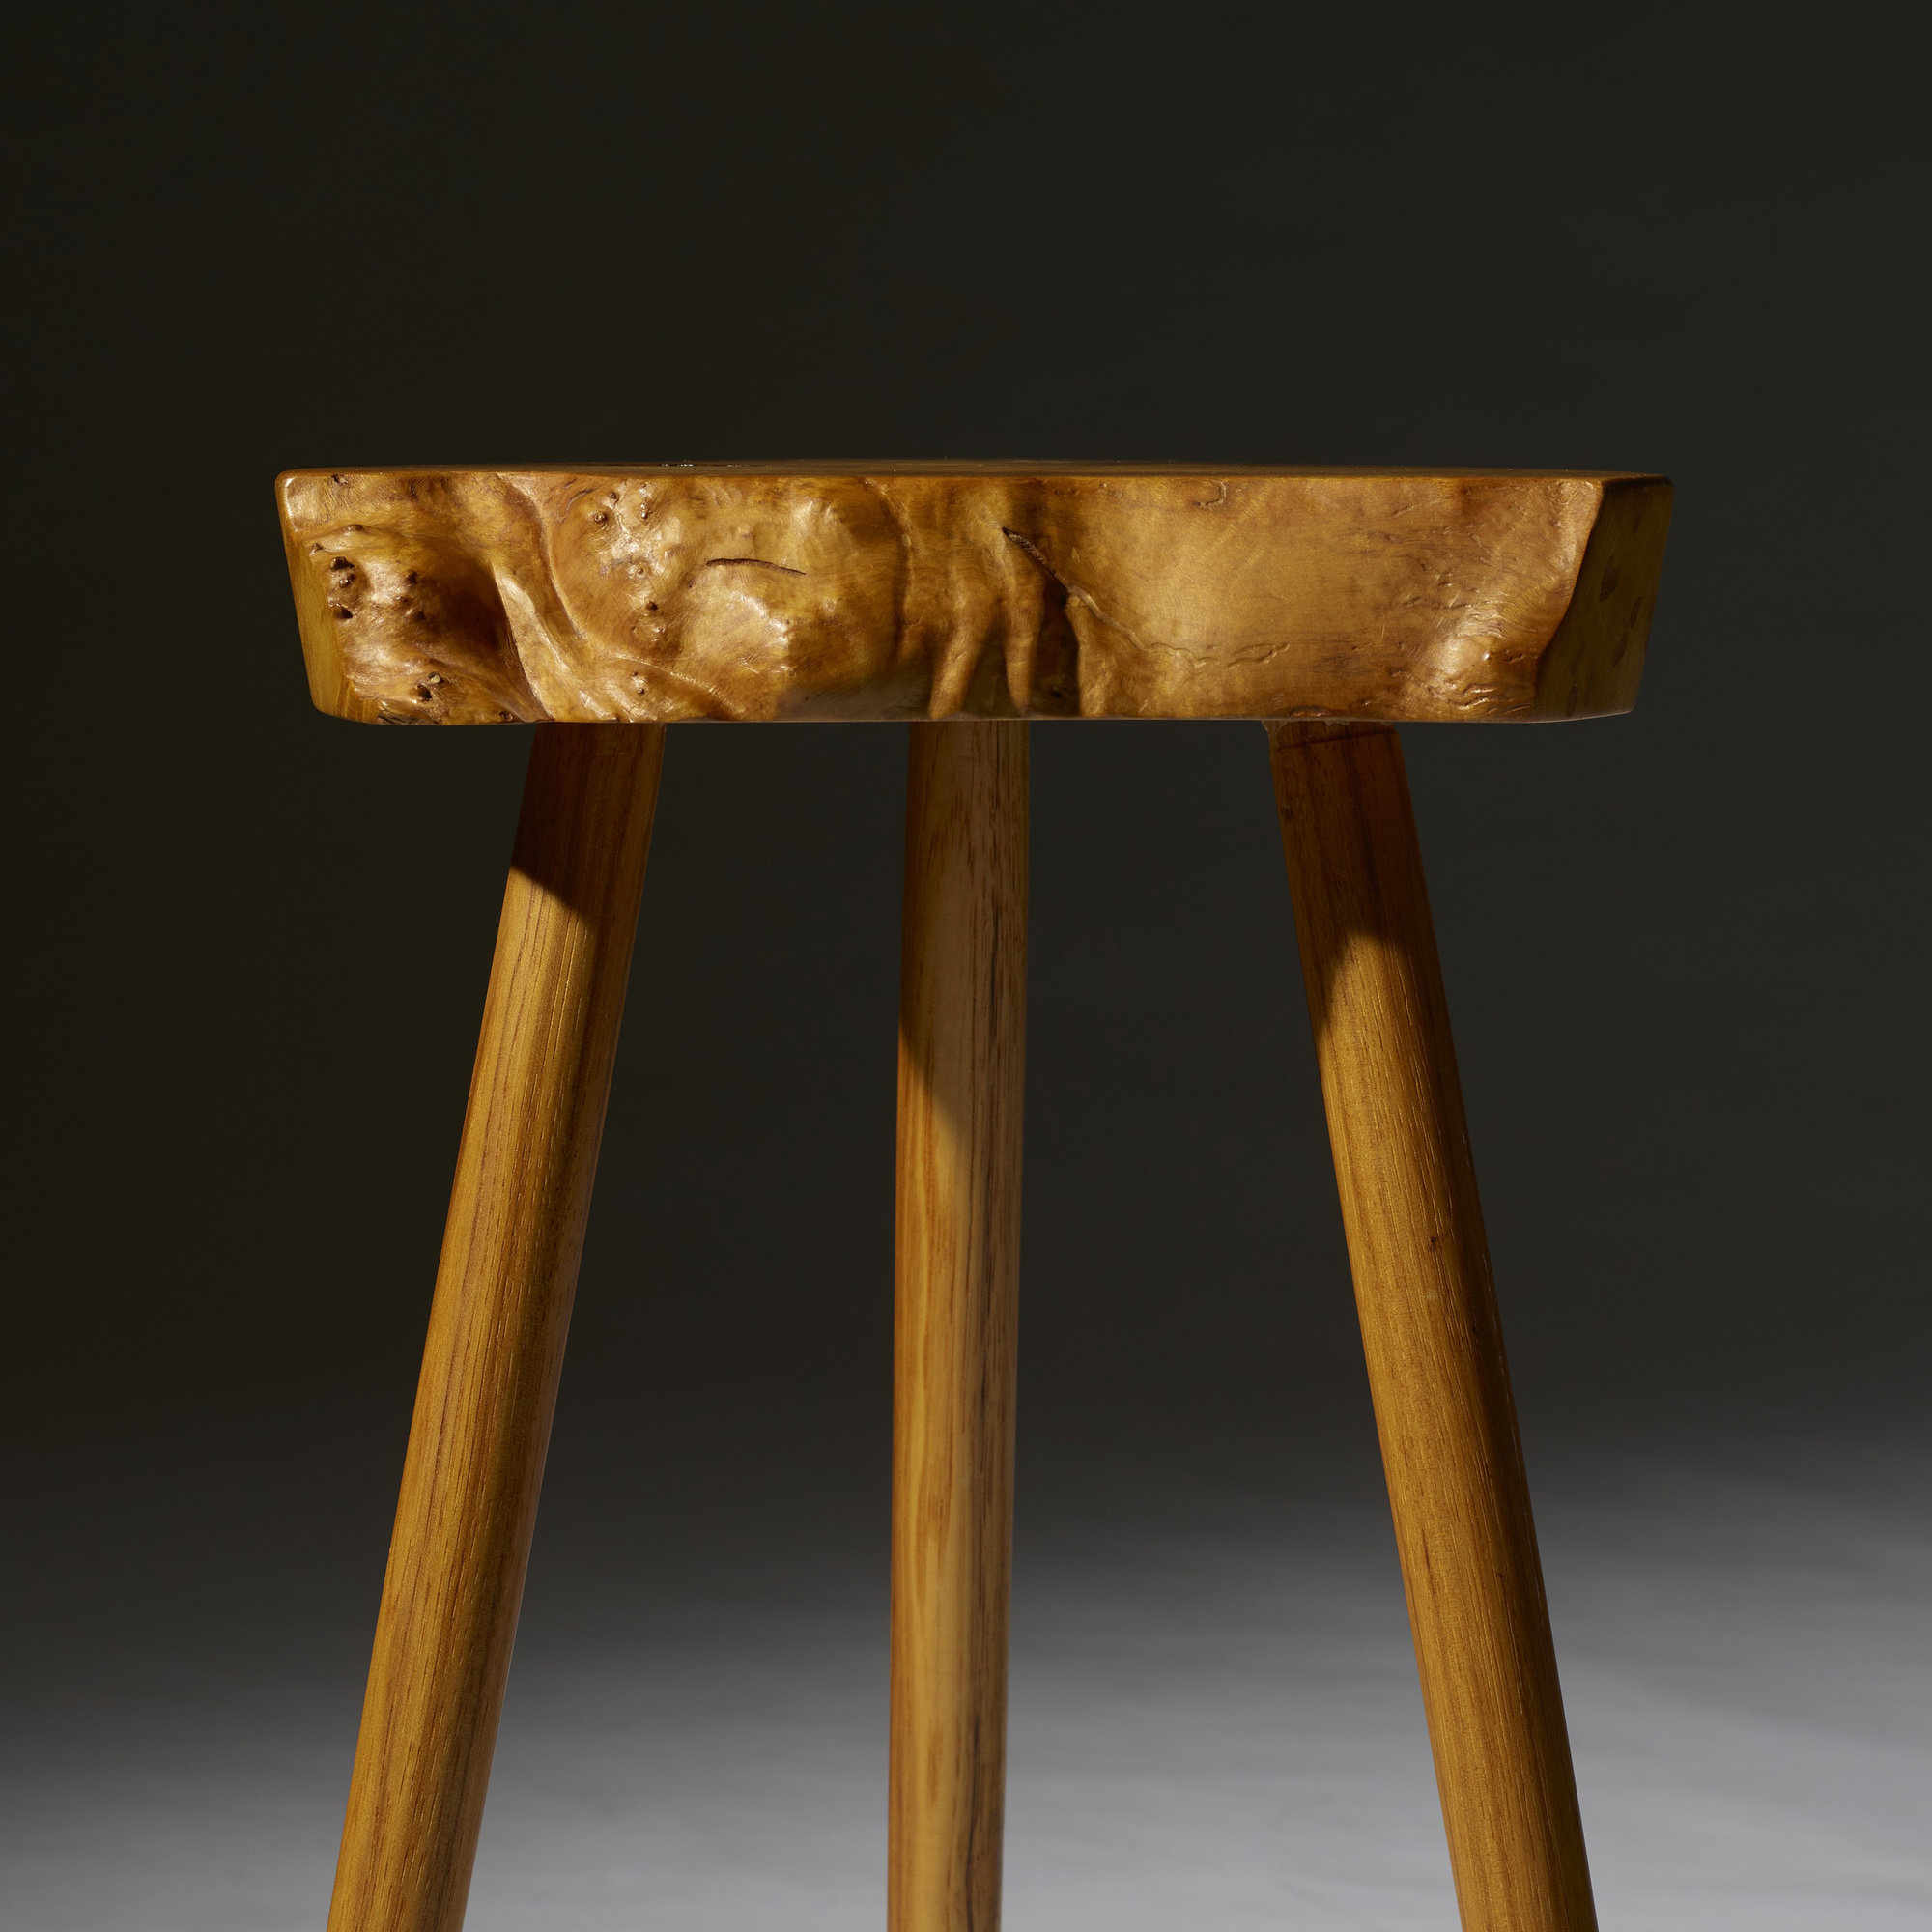 100: George Nakashima / Wepman occasional table (3 of 3)